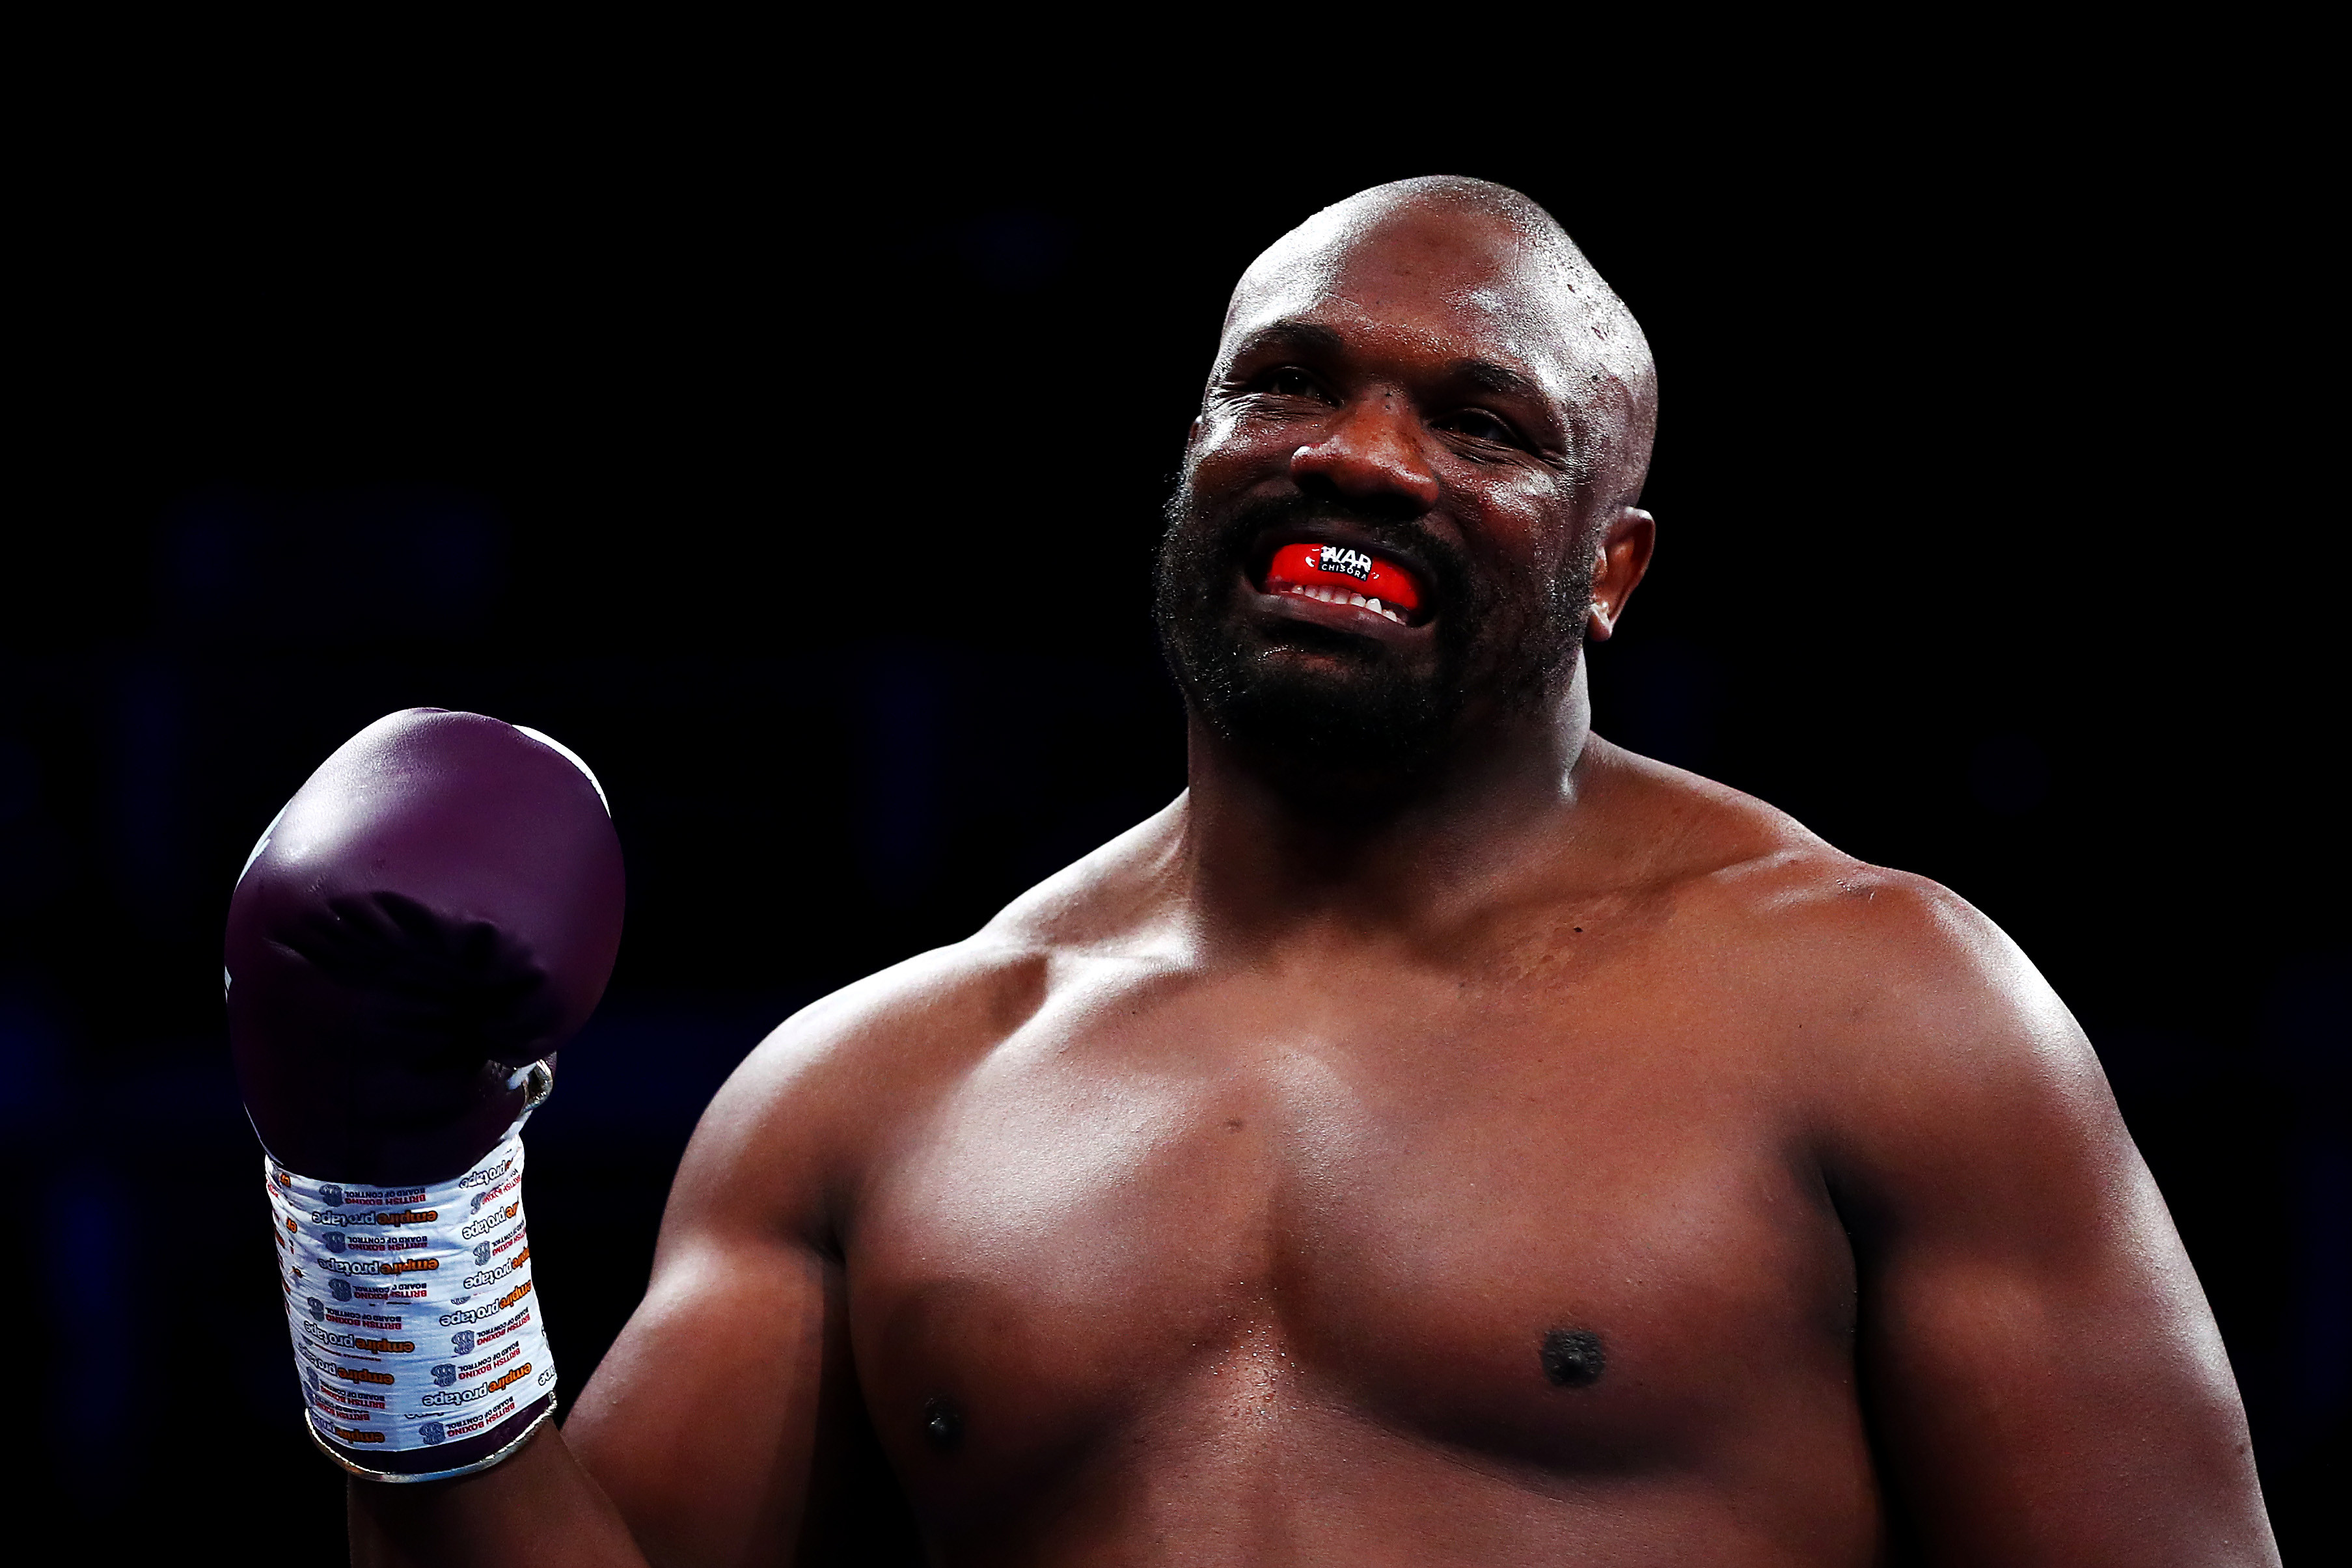 ed Chisora knocked out Artur Szpilka on July 20 in his last fight